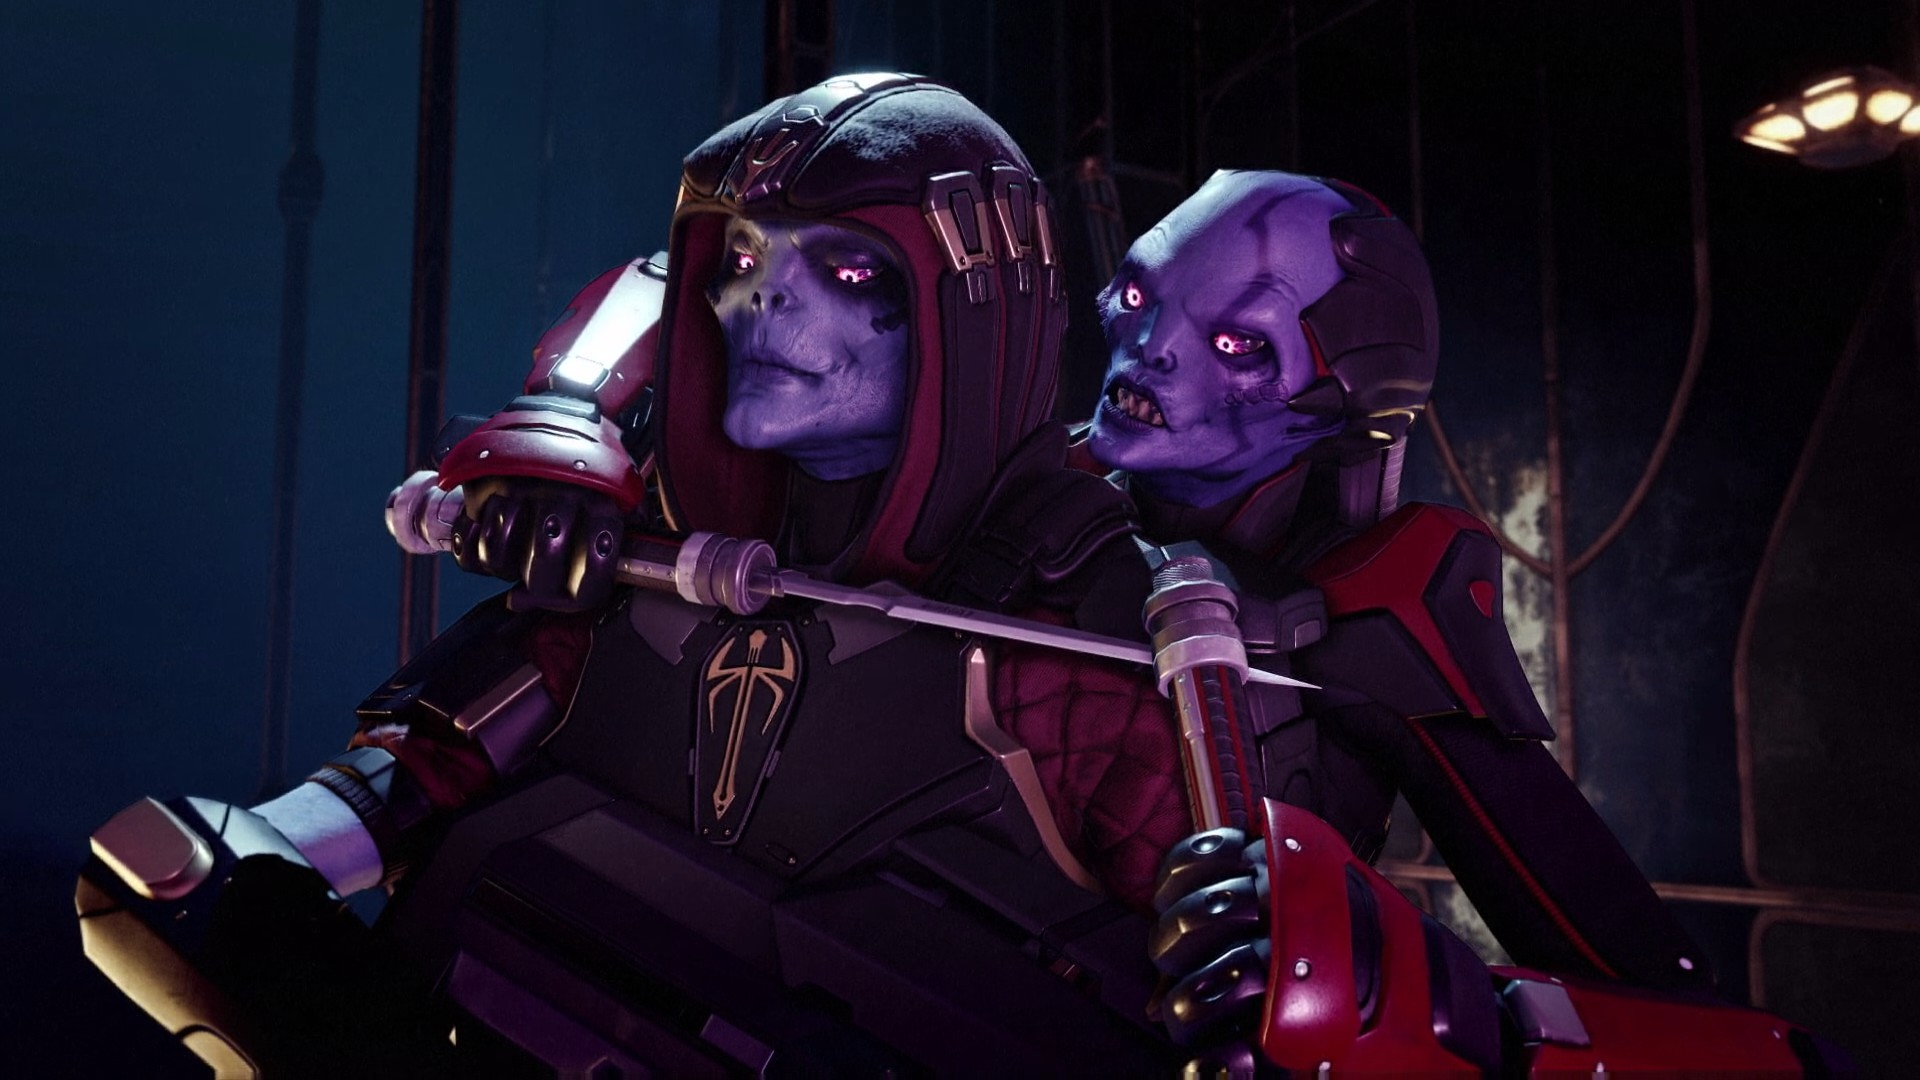 The Story introduces the New Characters and brings a new emphasis for the fight for Earth